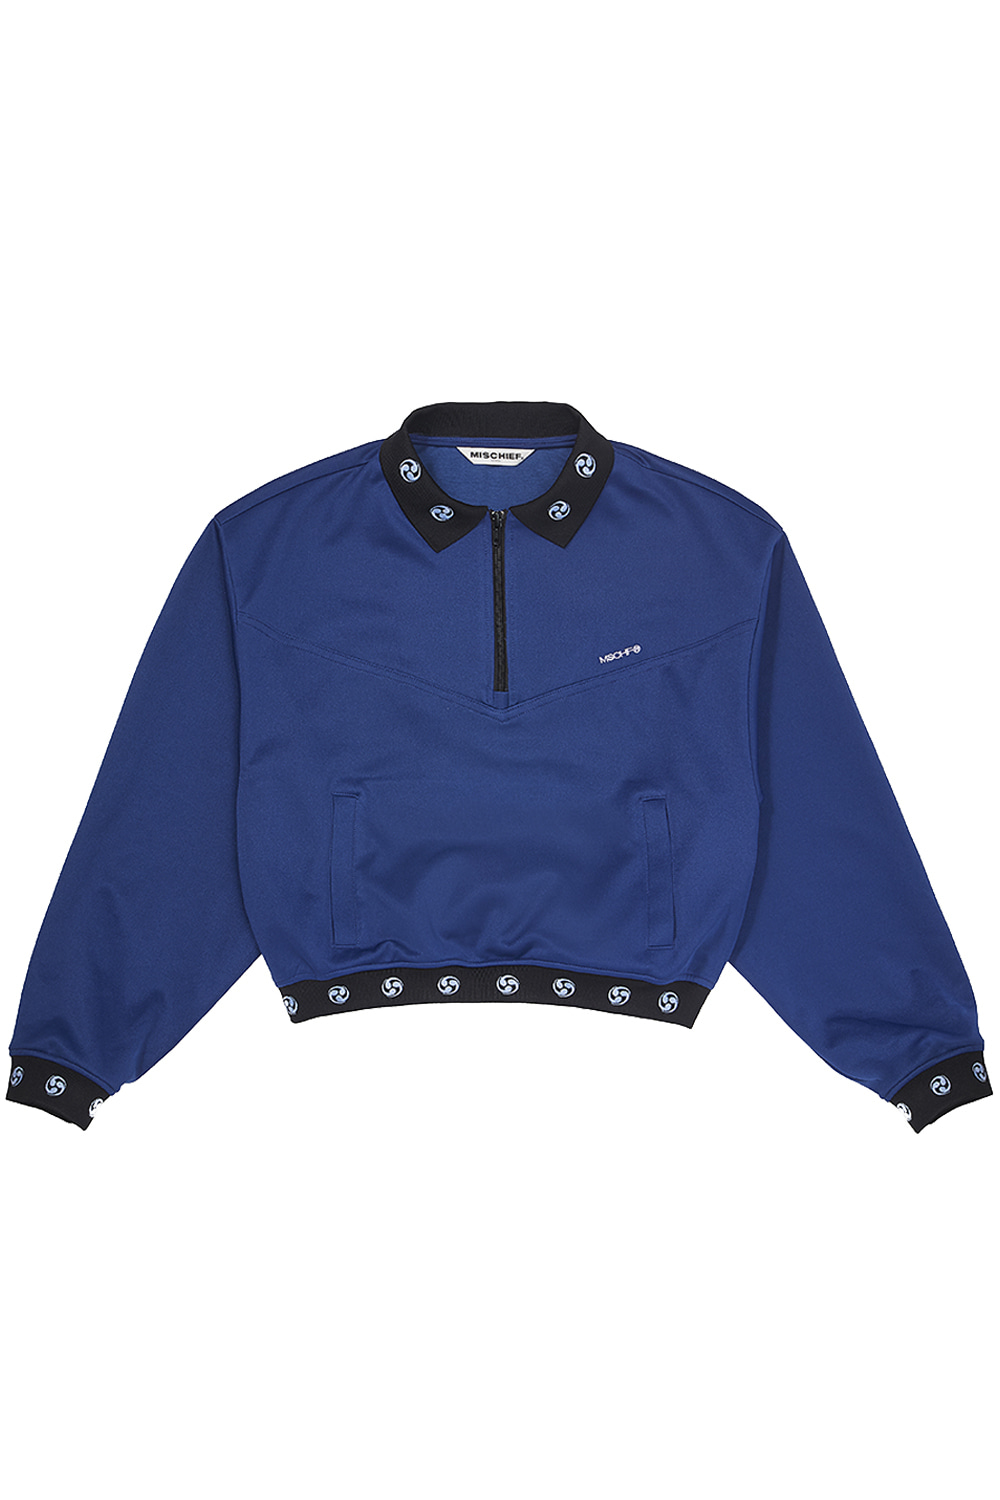 HALF ZIP TRACK TOP_navy